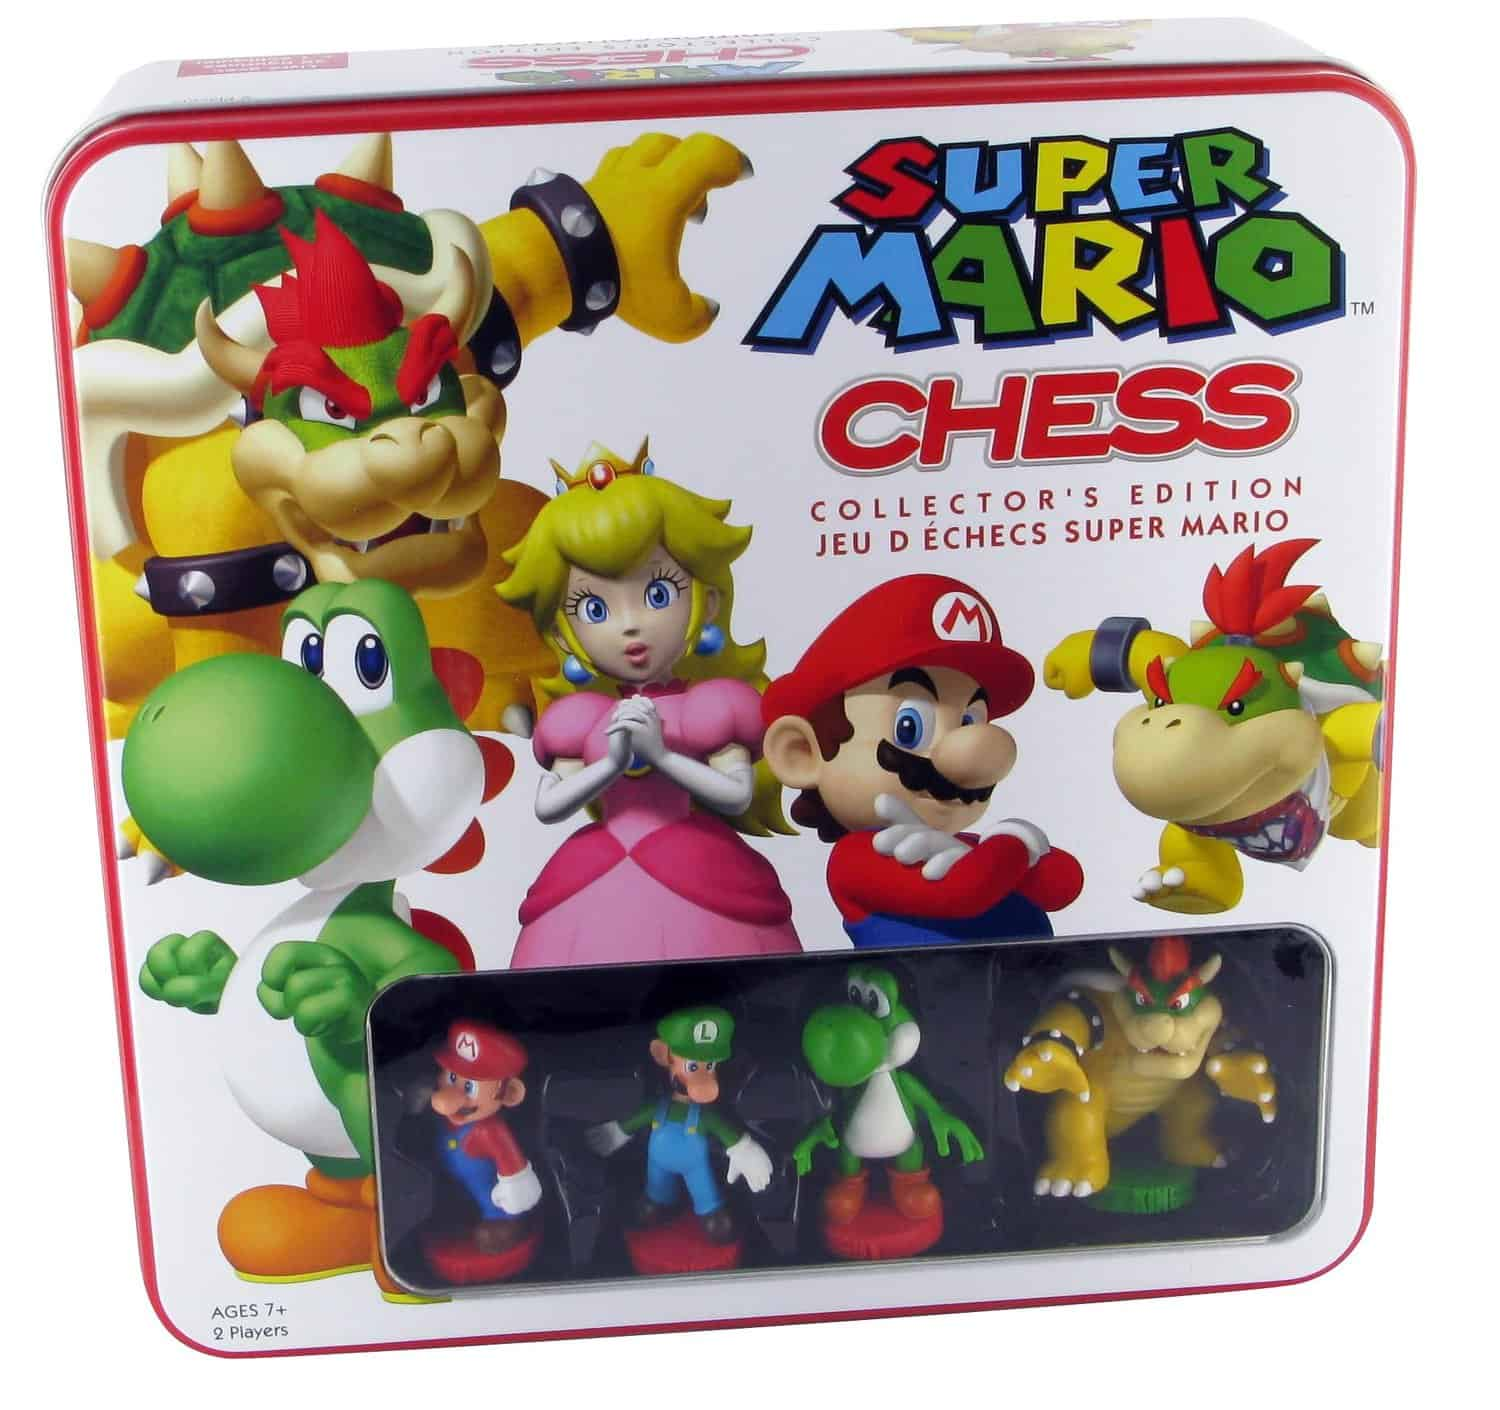 Super Mario Chess Collectors Edition Tin Box